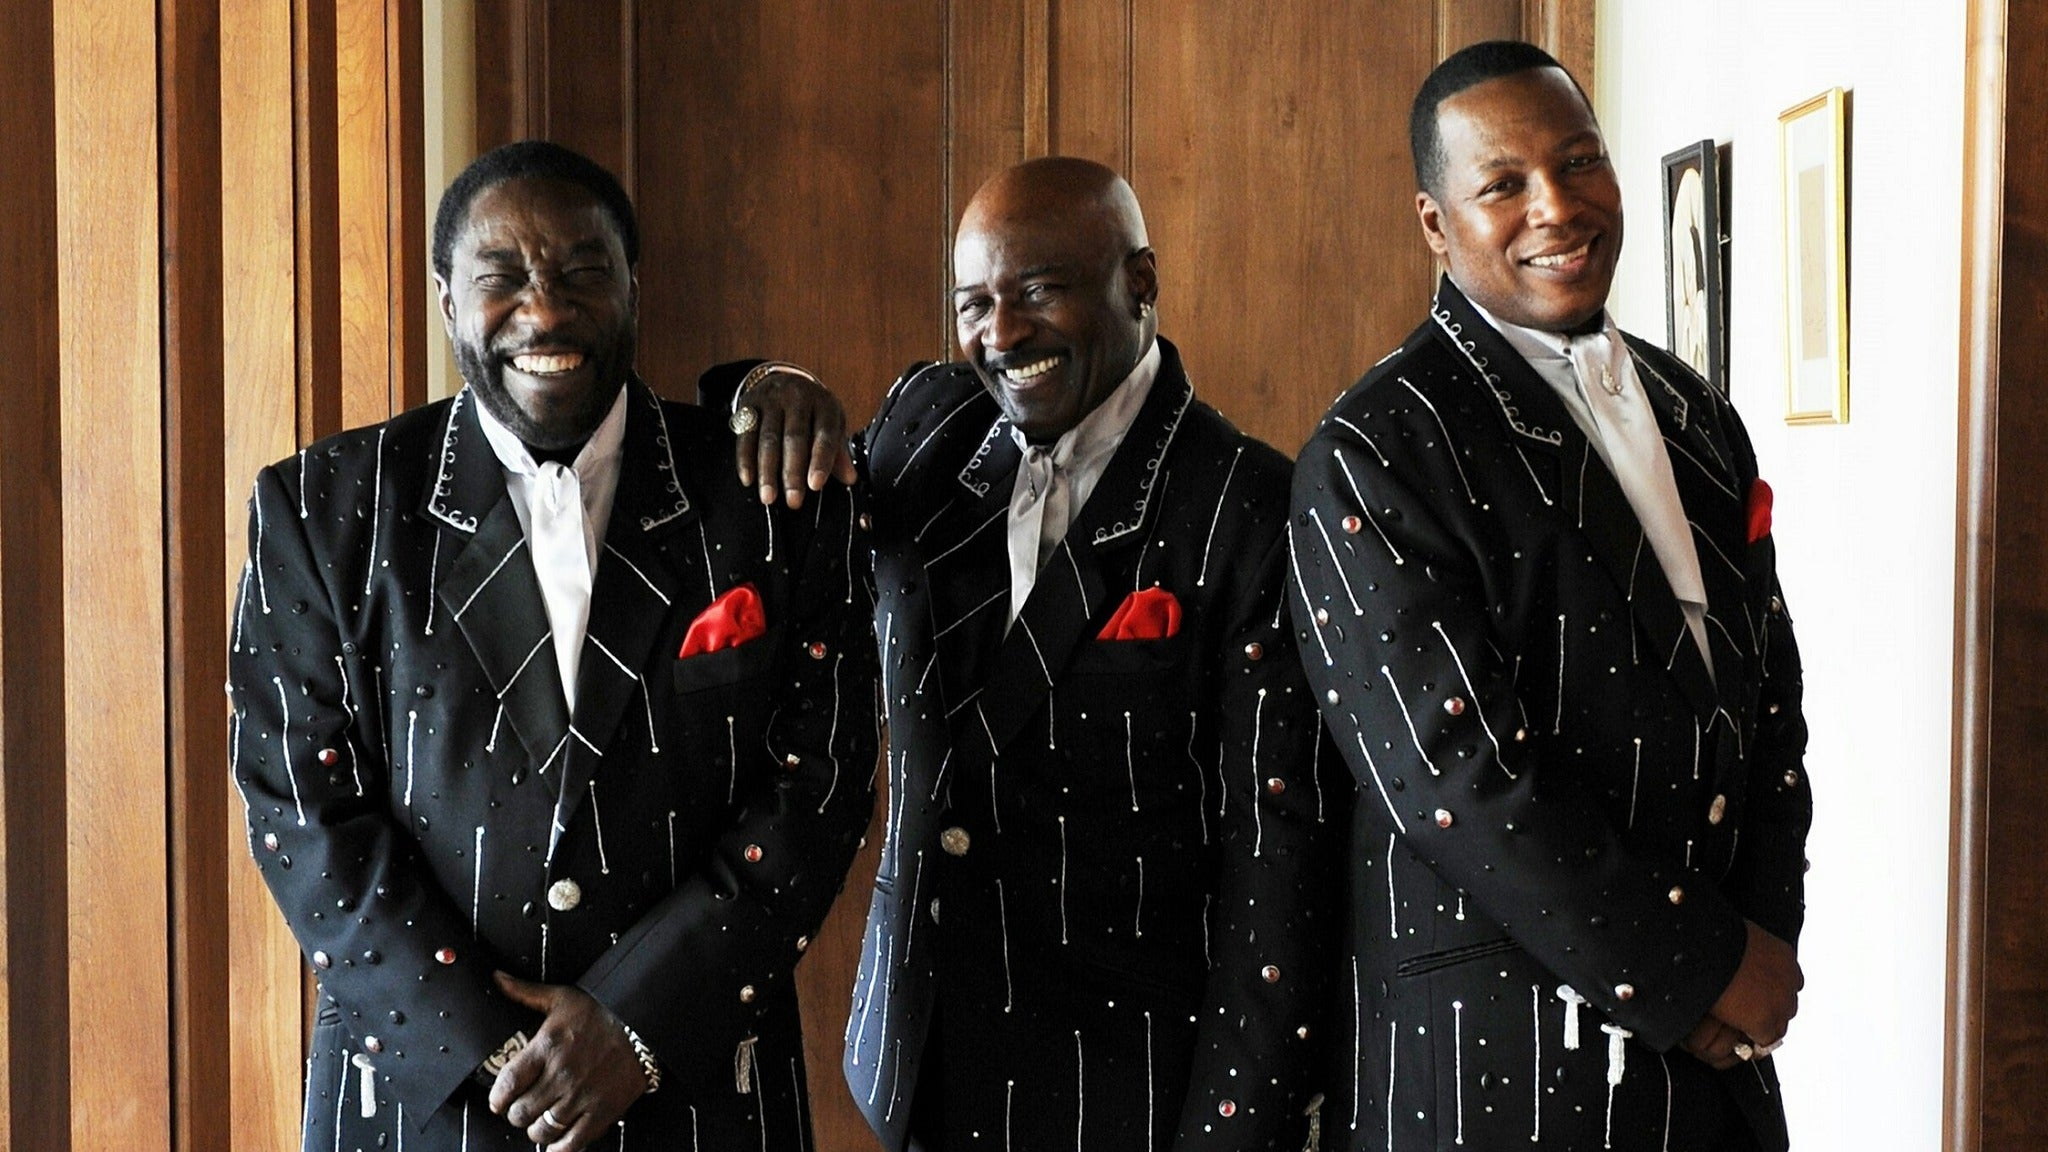 The O'Jays at Harrah's Ak-Chin Casino